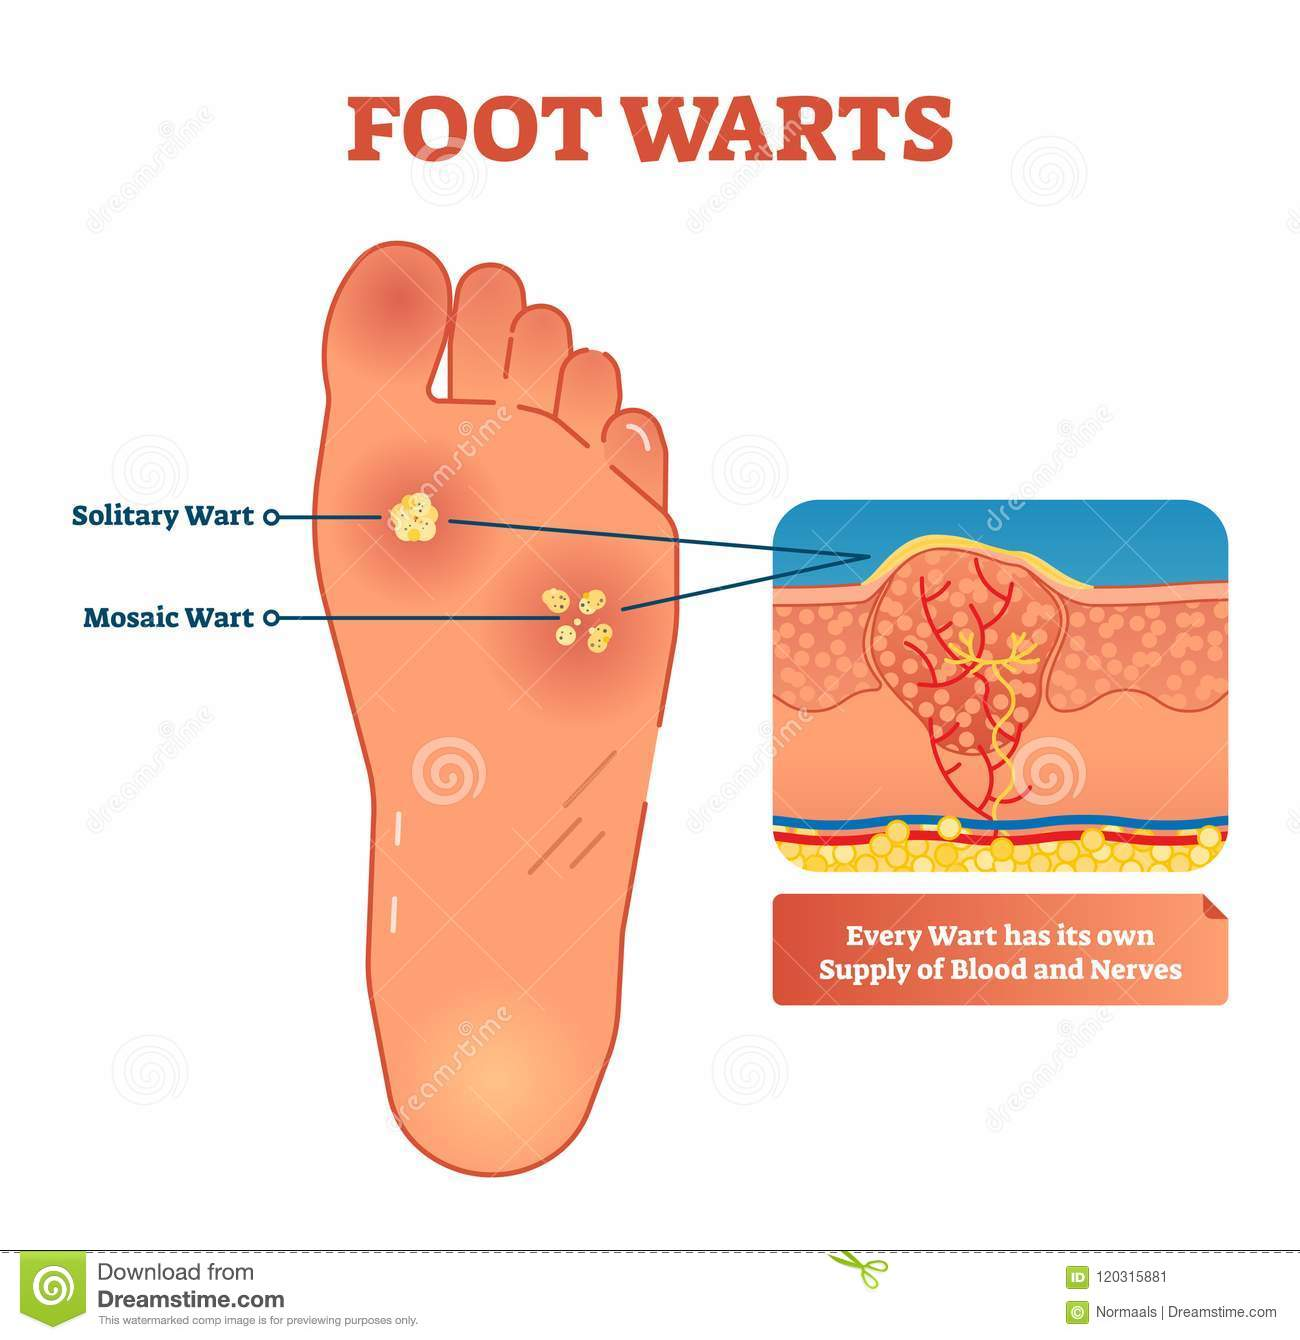 blister wart diagram 9 7 fearless wonder de \u2022 Anatomy of Wart foot warts vector illustration scheme with solitary and mosaic rh dreamstime com frozen wart stages frozen